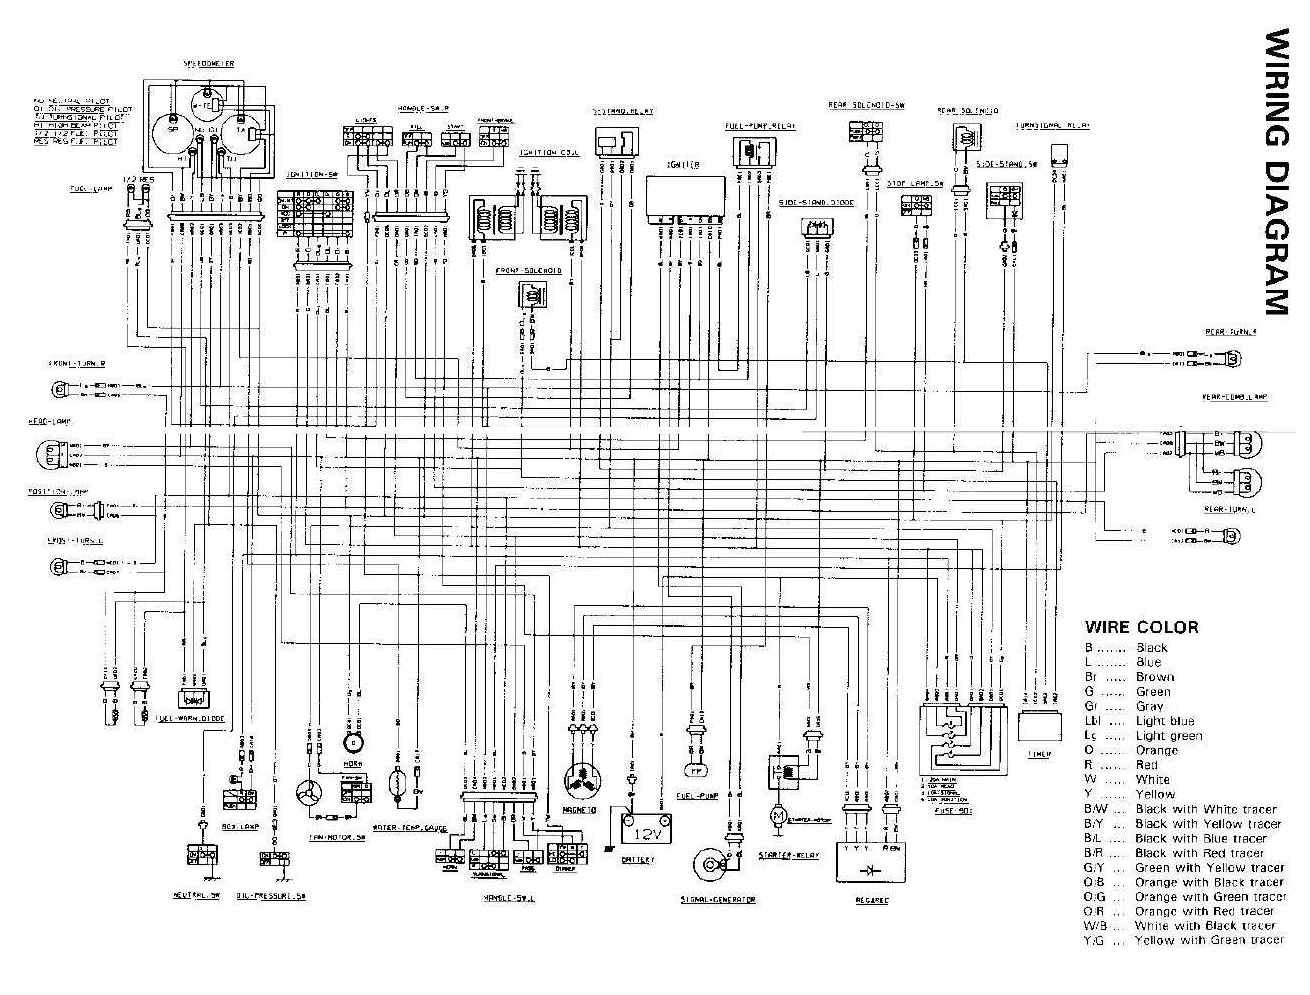 ih truck wiring diagram 1998 international truck wiring diagram images international 4700 wiring diagram motorcycle symbols